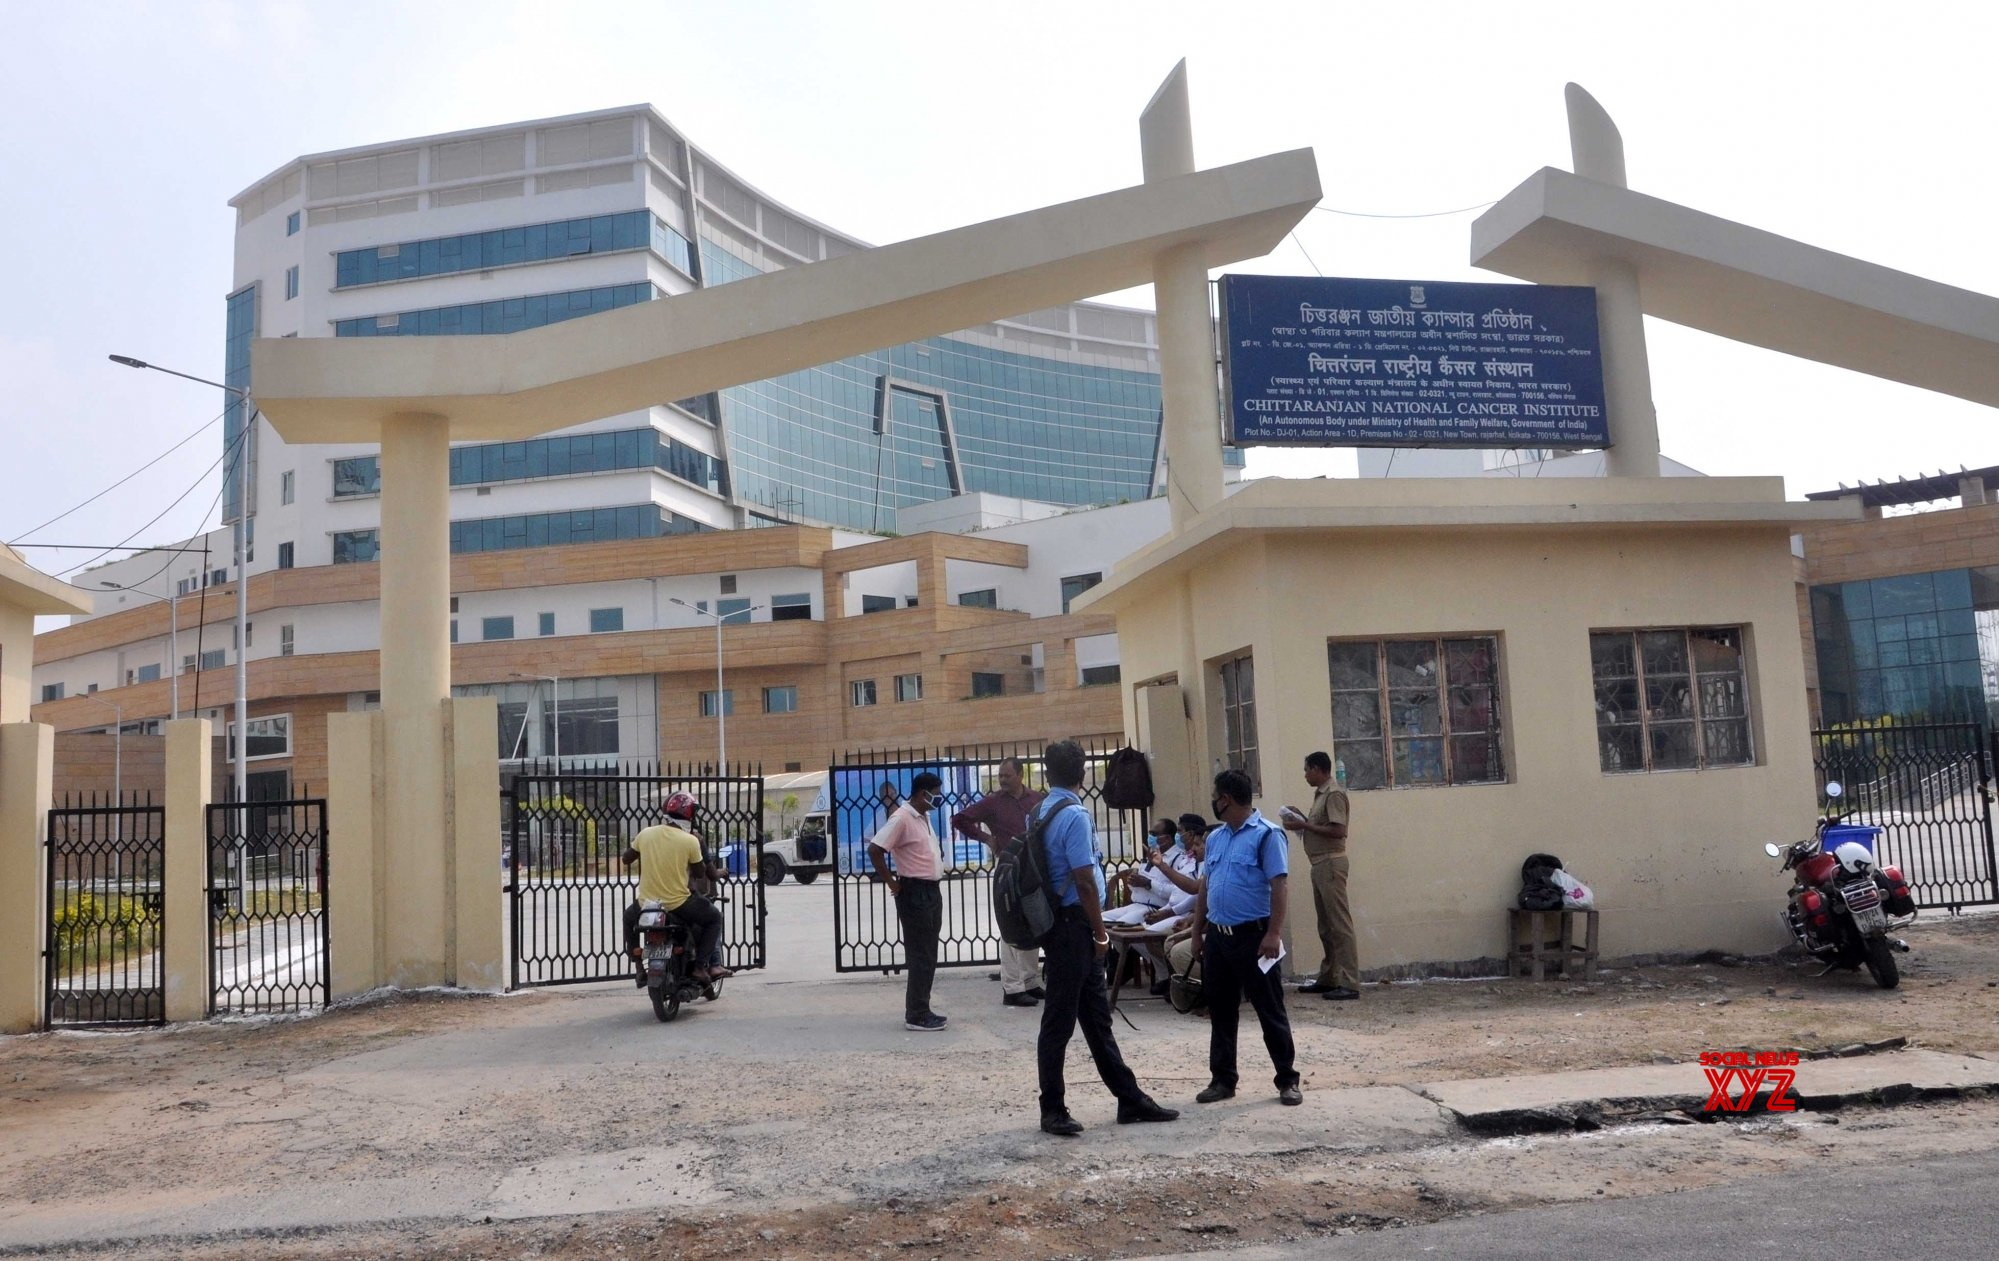 Kolkata: Chittaranjan National Cancer Institute equipped with healthcare fascilities for COVID - 19 patients #Gallery